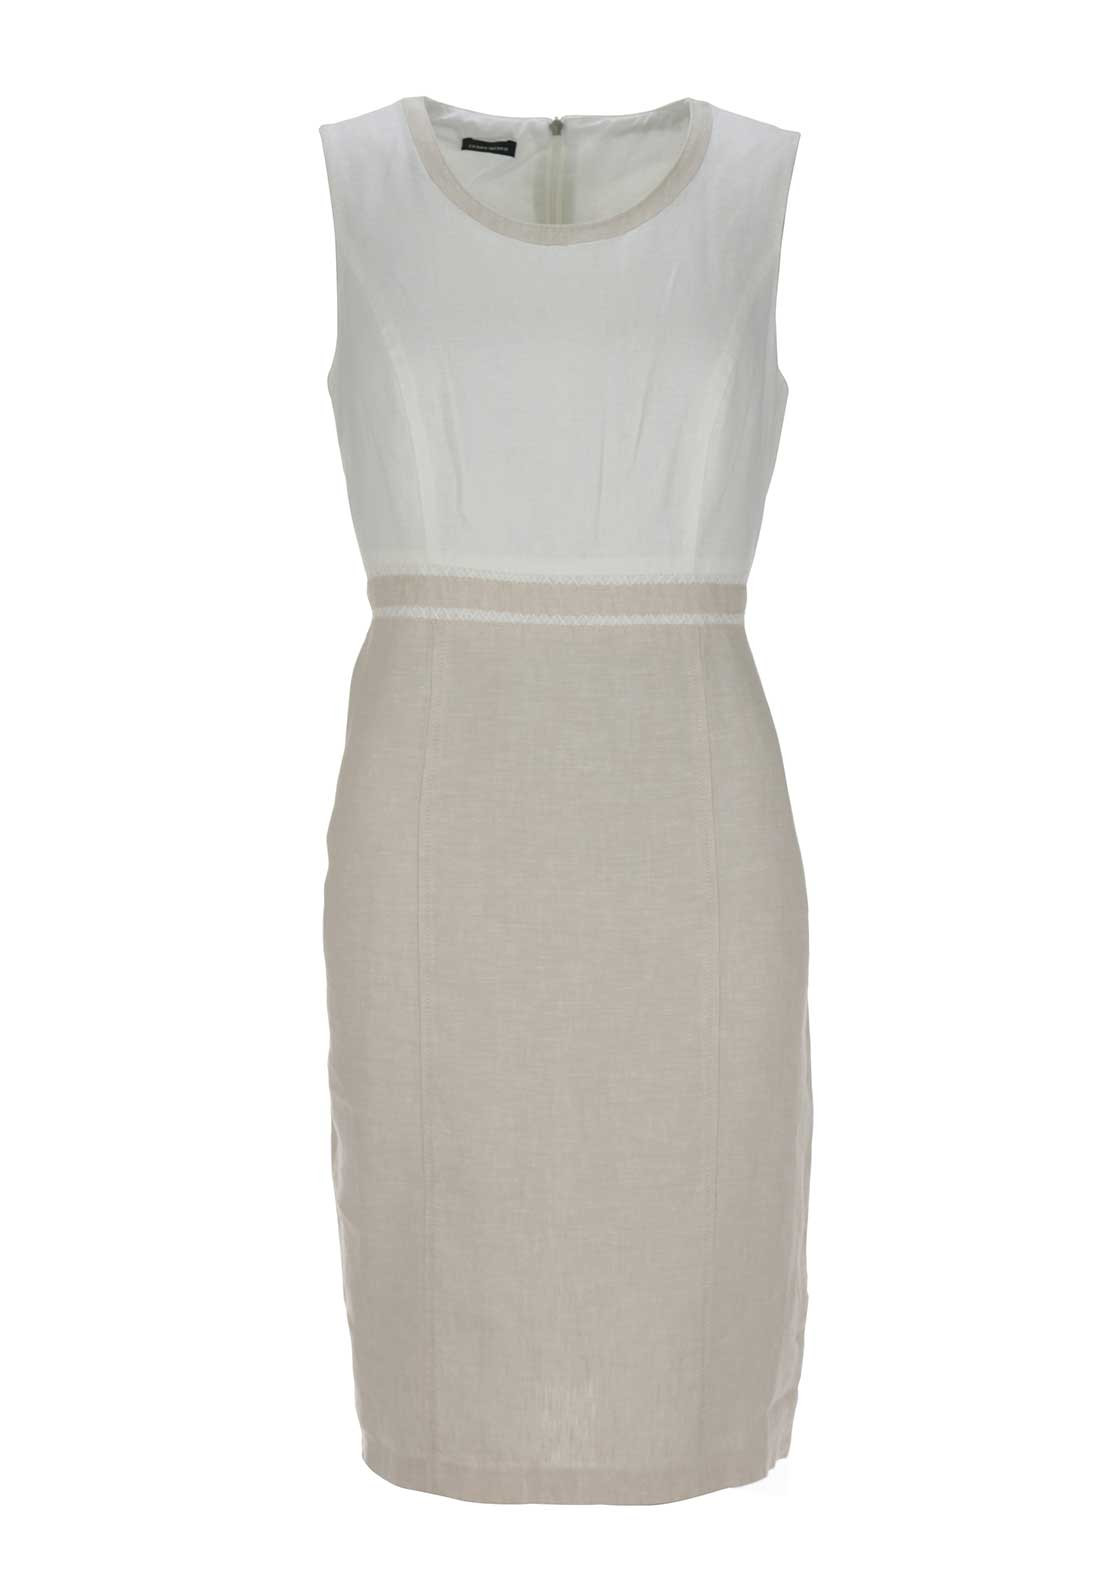 Gerry Weber Sleeveless Linen Pencil Dress, Beige and White